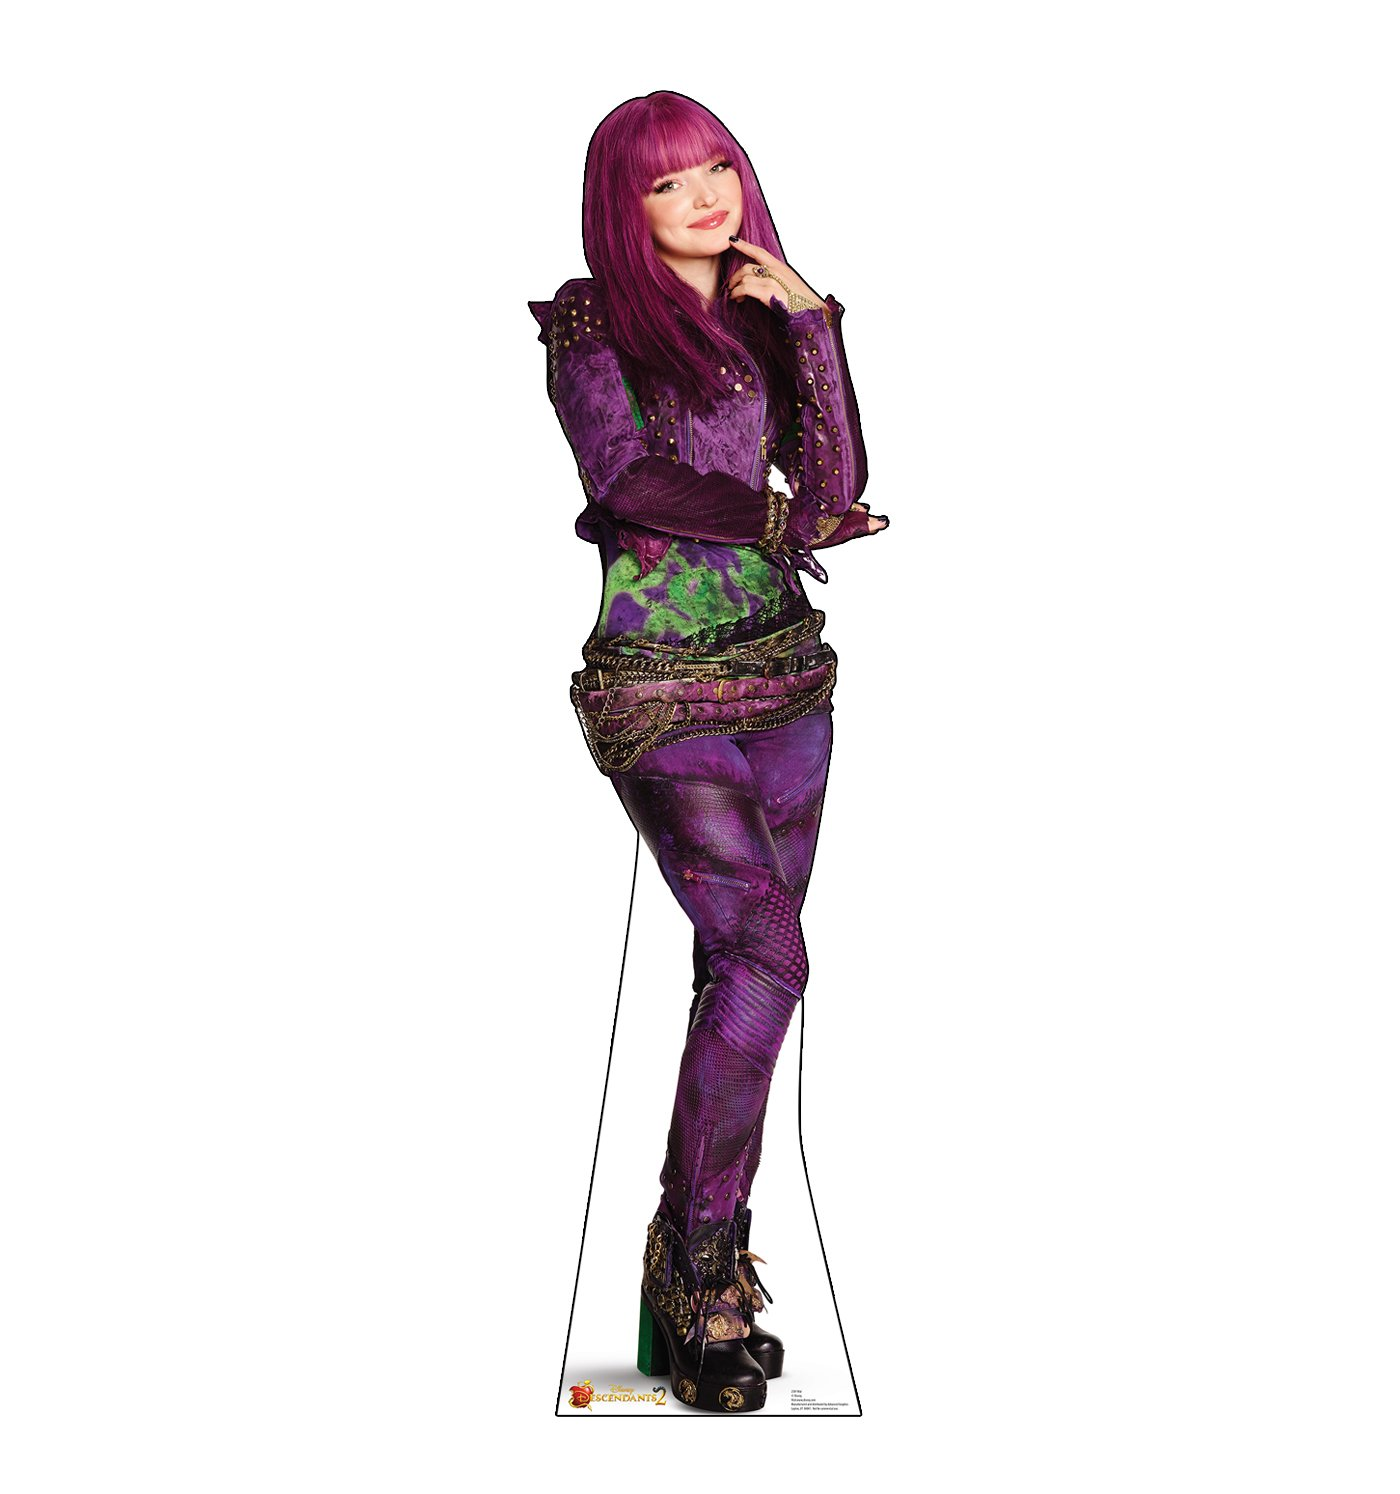 Advanced Graphics Mal Life Size Cardboard Cutout Standup - Disney Descendants 2